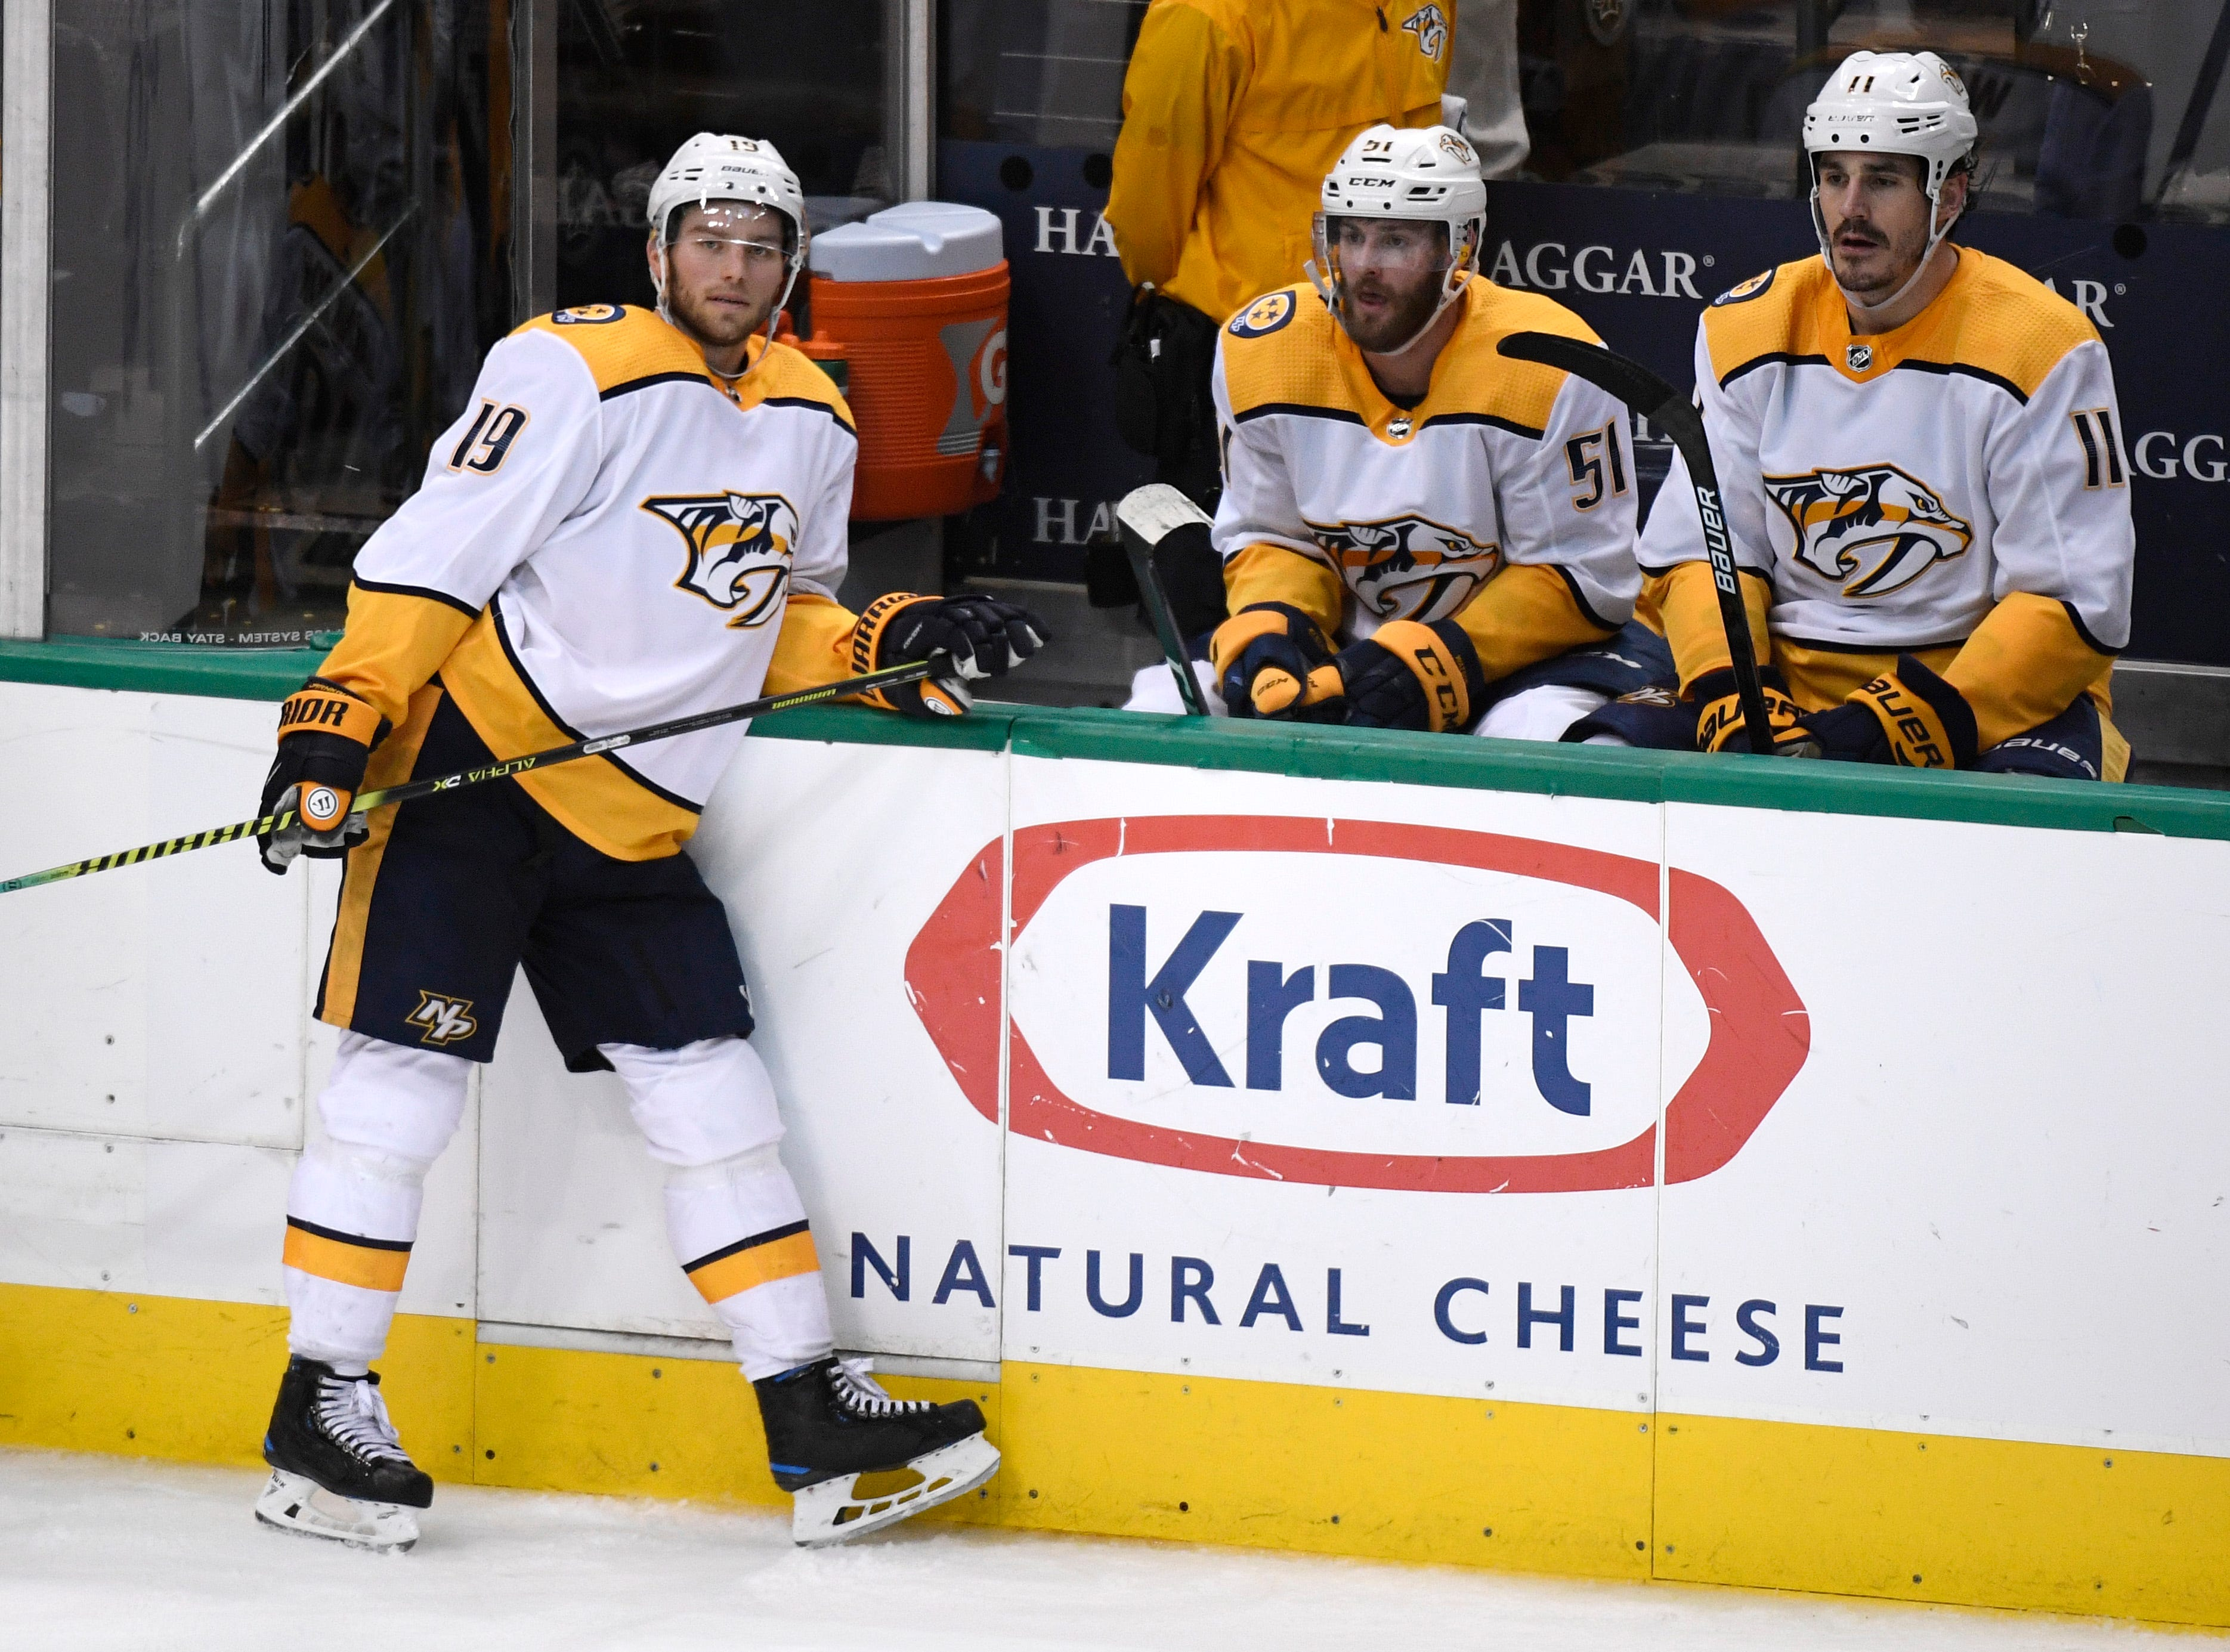 Nashville Predators center Calle Jarnkrok (19), left wing Austin Watson (51) and center Brian Boyle (11) react to their 2-1 overtime loss to the Dallas Stars in their divisional semifinal game at the American Airlines Center in Dallas, Texas, Monday, April 22, 2019.